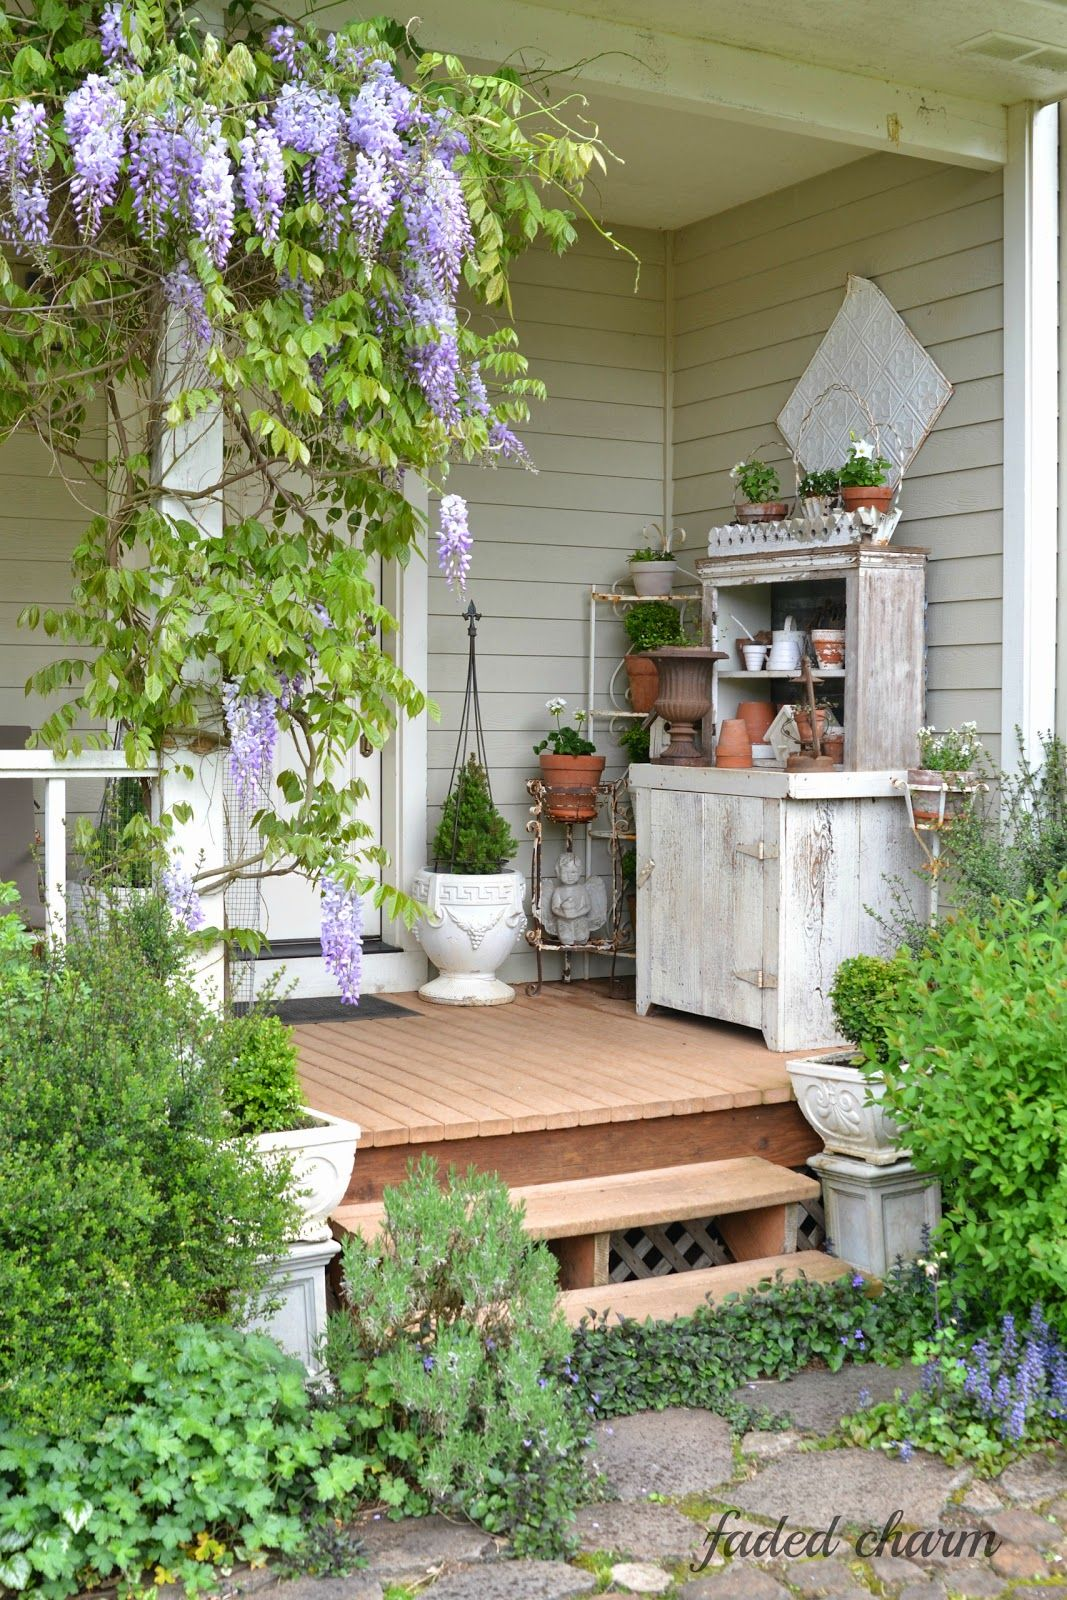 Charming Summer Porch The Wisteria Looks Beautiful